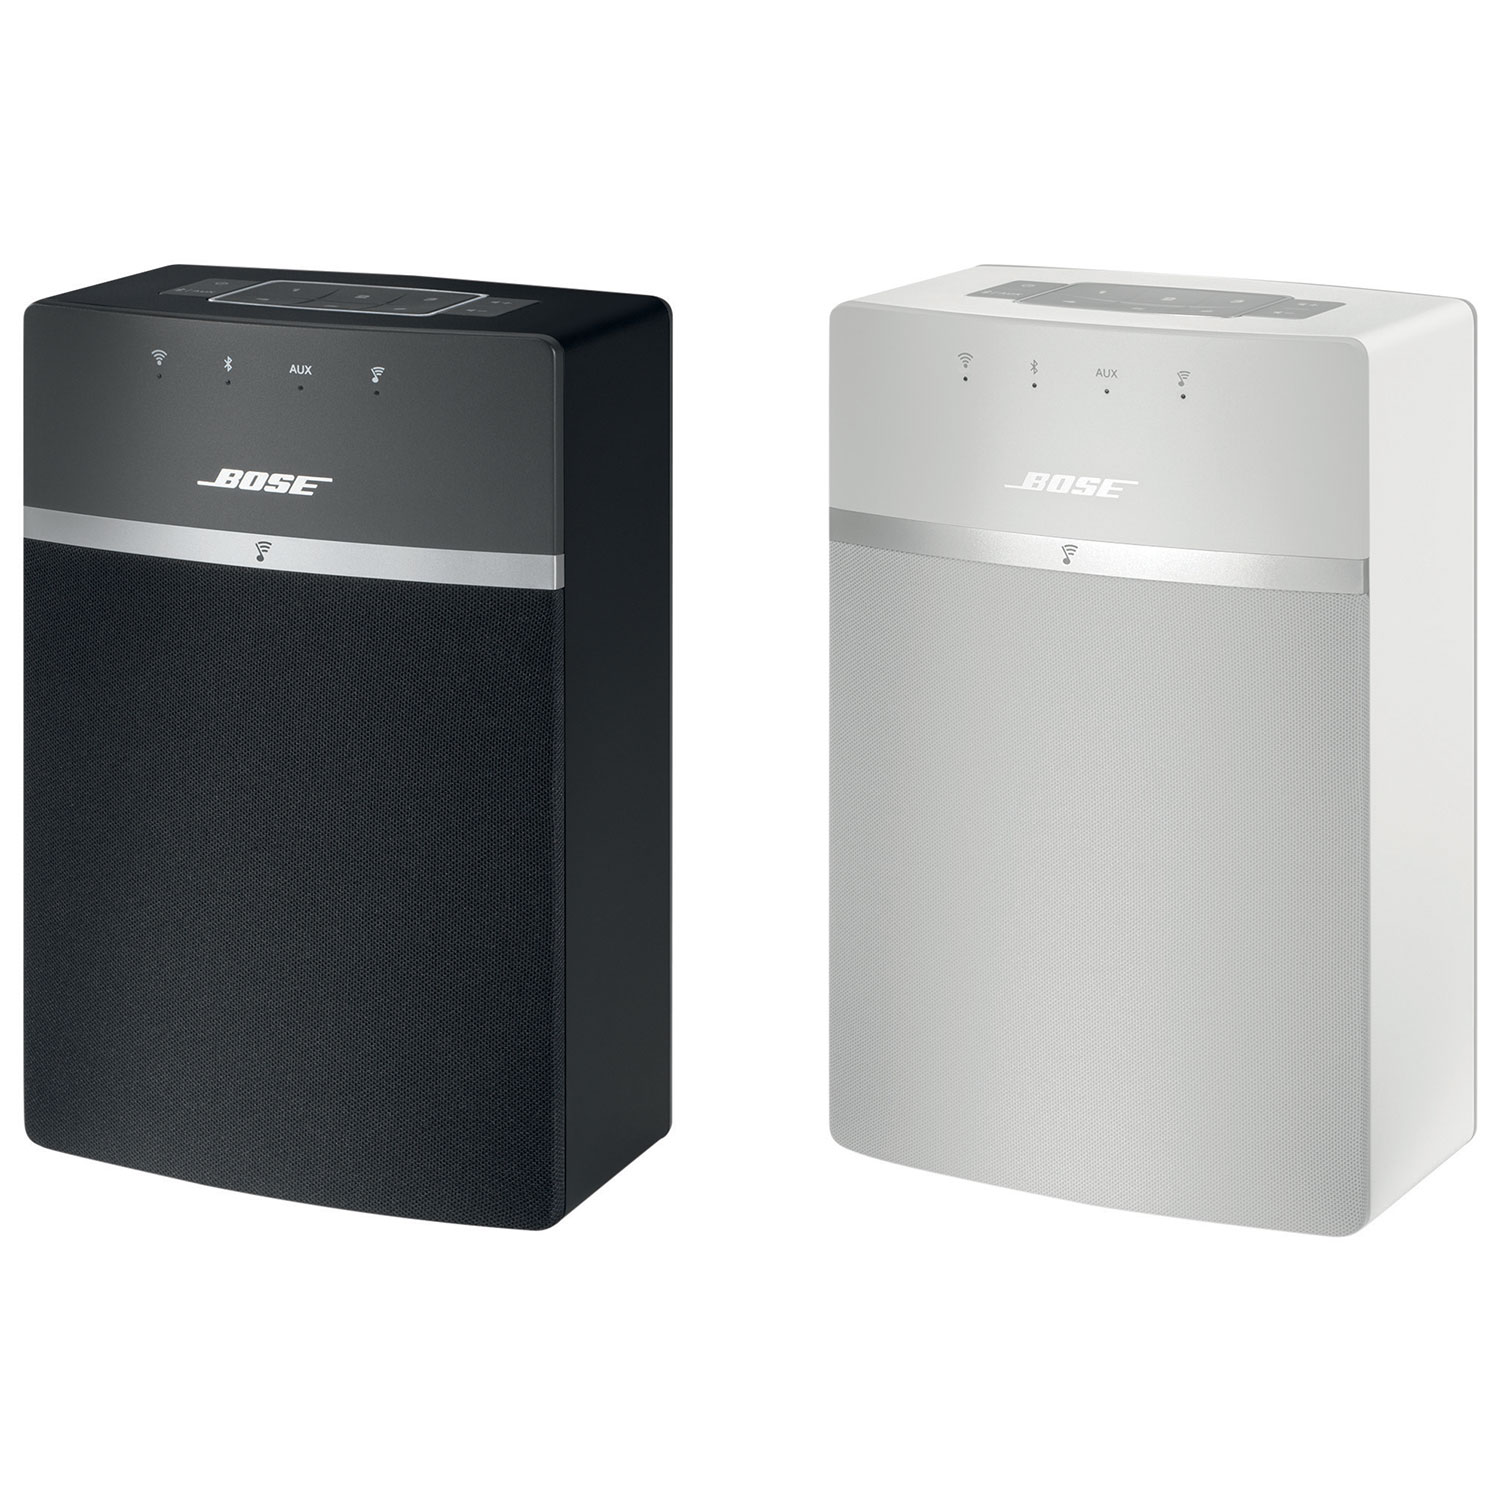 bose 416776. bose soundtouch 10 wireless multi-room speaker - black : home speakers best buy canada 416776 o